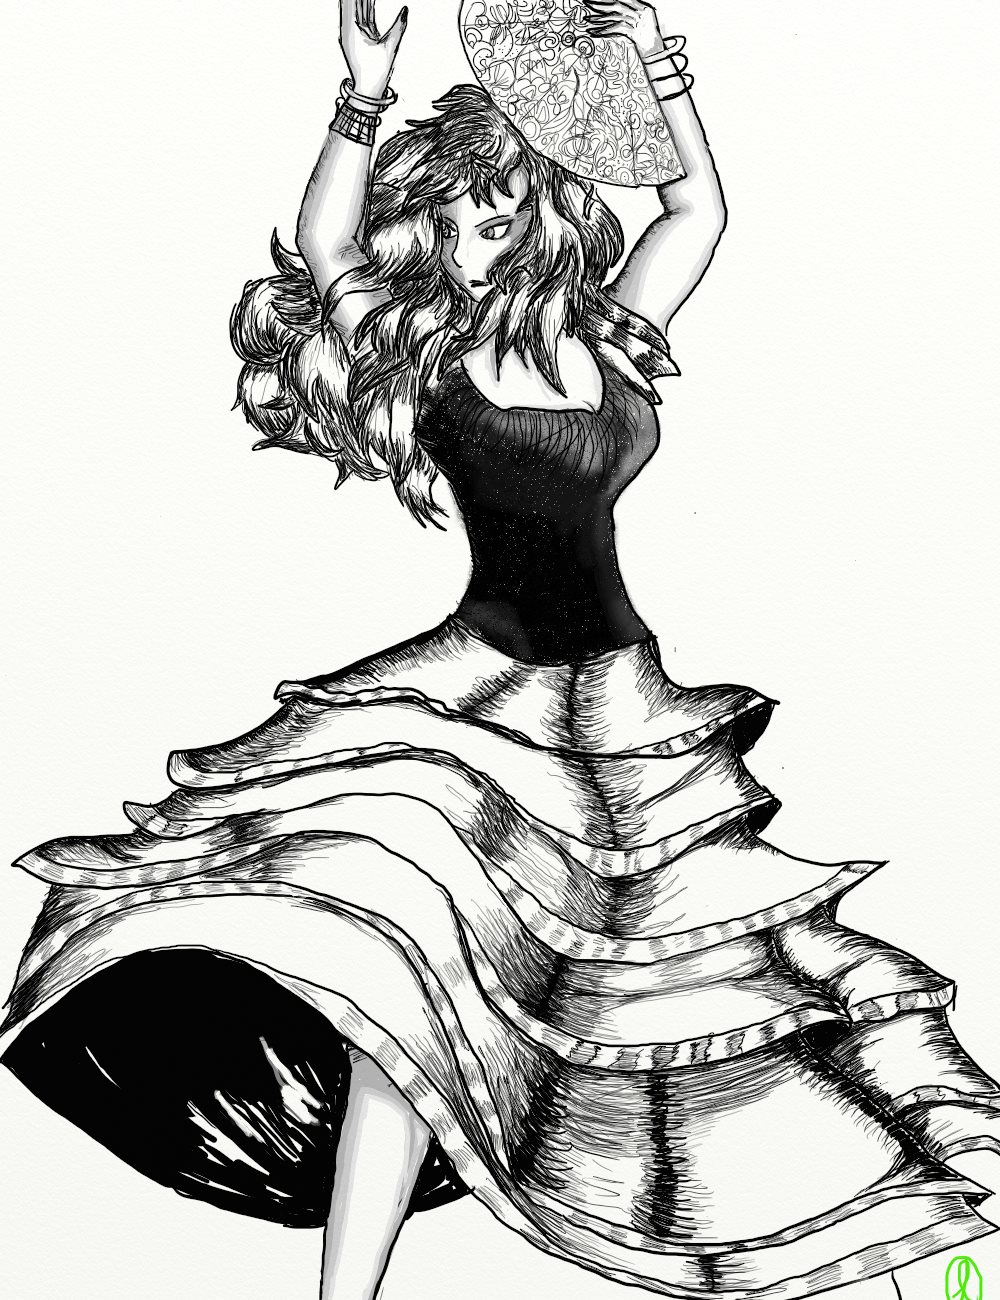 Danseuse de flamenco by lizzeldach on deviantart - Dessin danseuse de flamenco ...